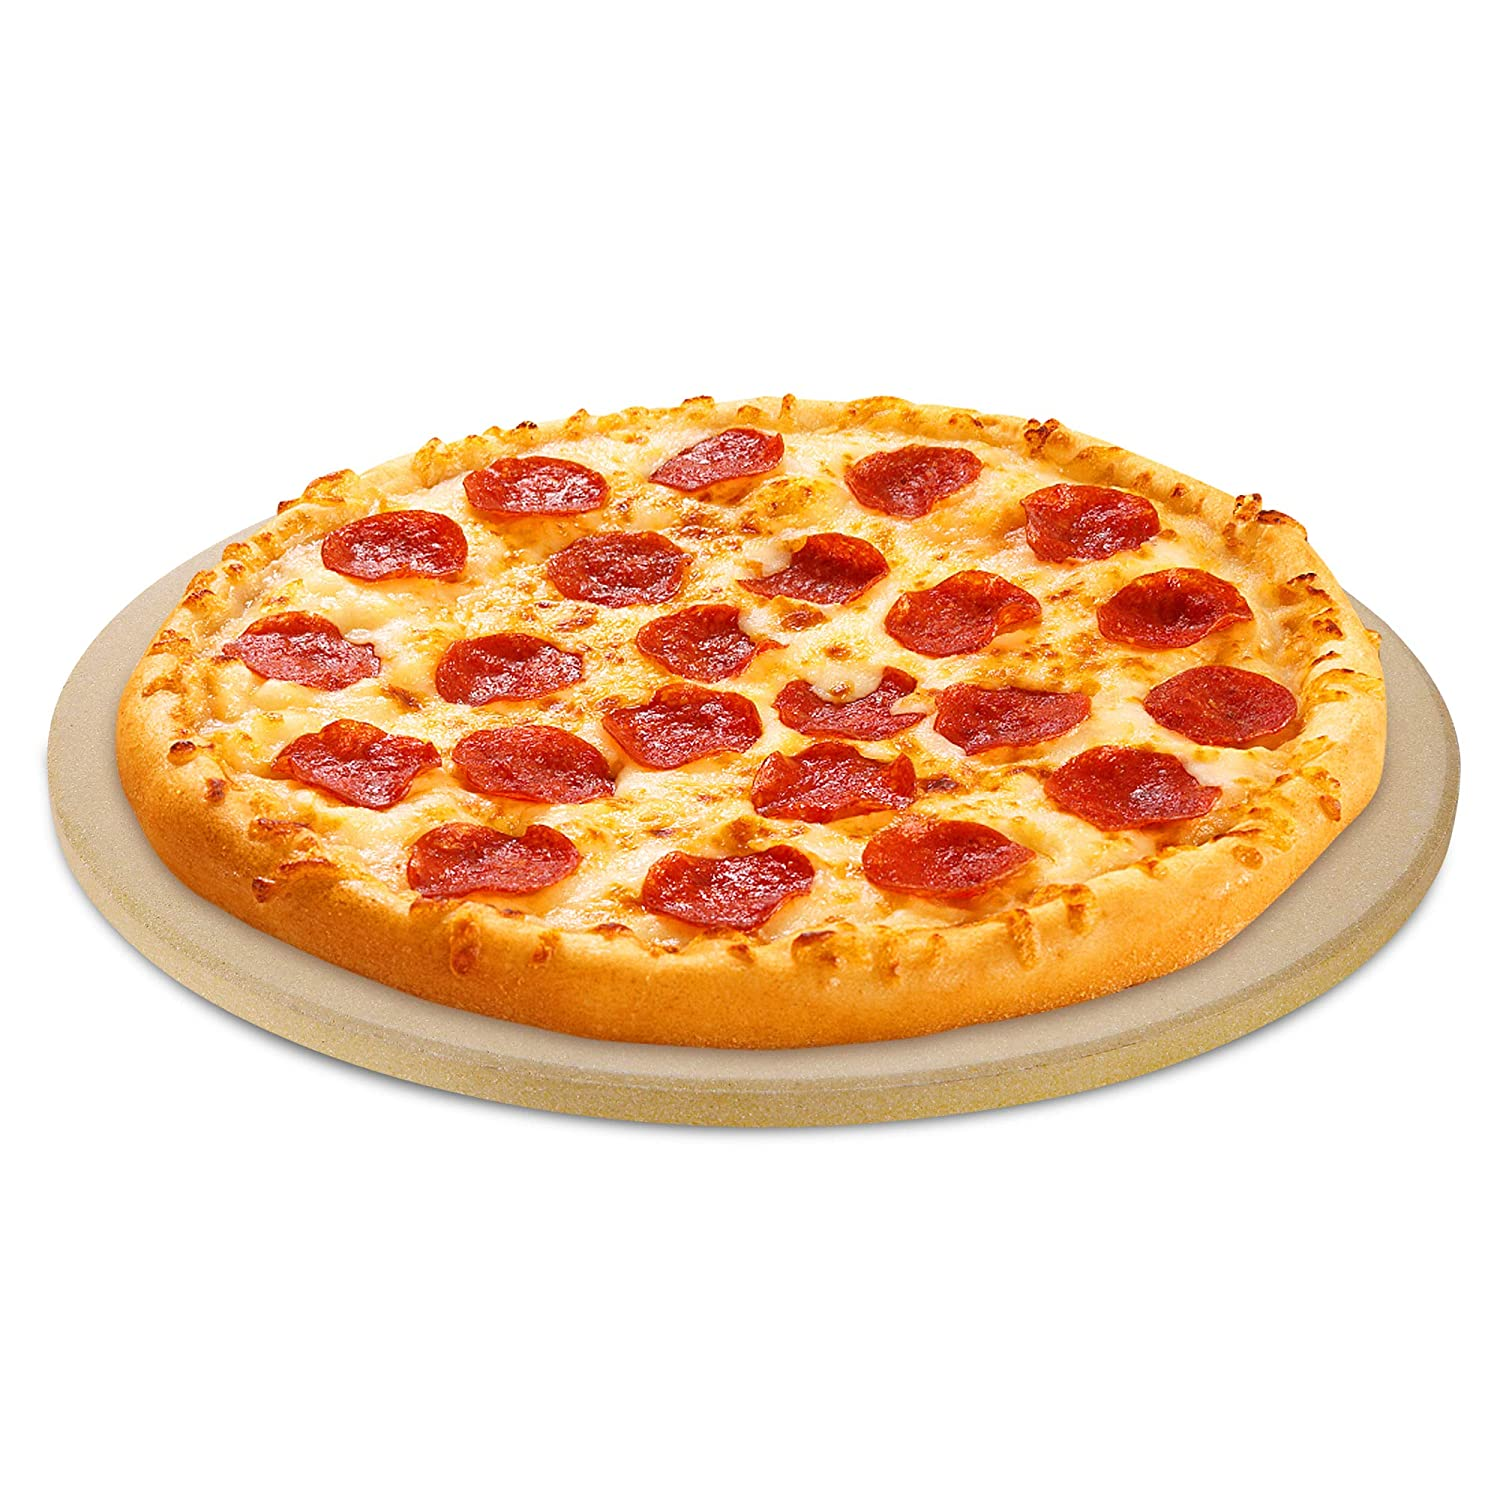 UNICOOK Small Pizza Stone, 10.25 Inch Round Pizza Grilling Stone, Baking Stone, Perfect Size for Personal Pizza, Ideal for Baking Crisp Crust Pizza, Bread, Cookies and More, Durable and Safe